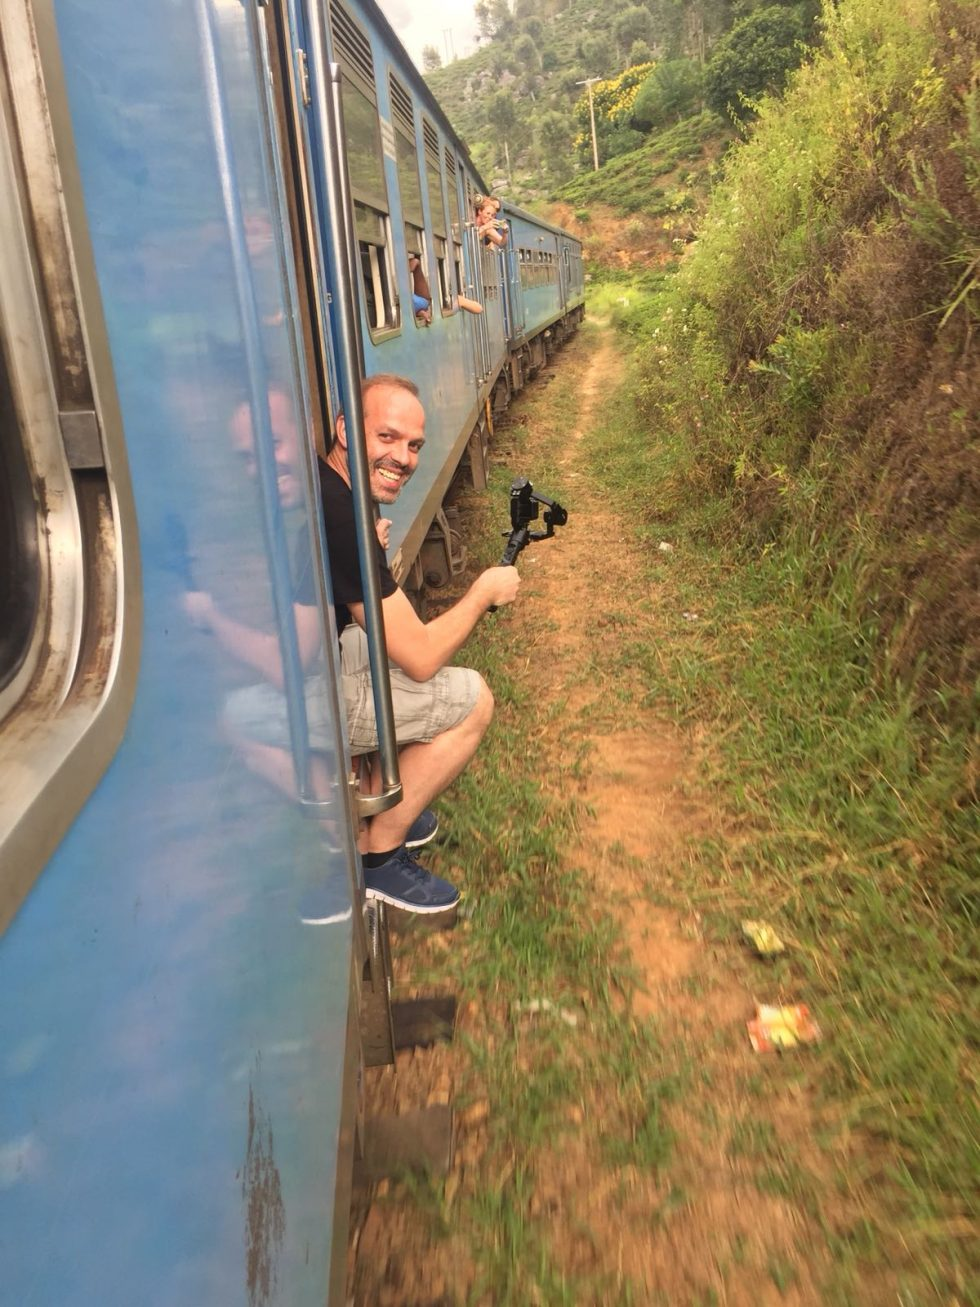 The Best Spot on the Train on the trip from Kandy for Ella - Sri Lanka | Happymind Travels